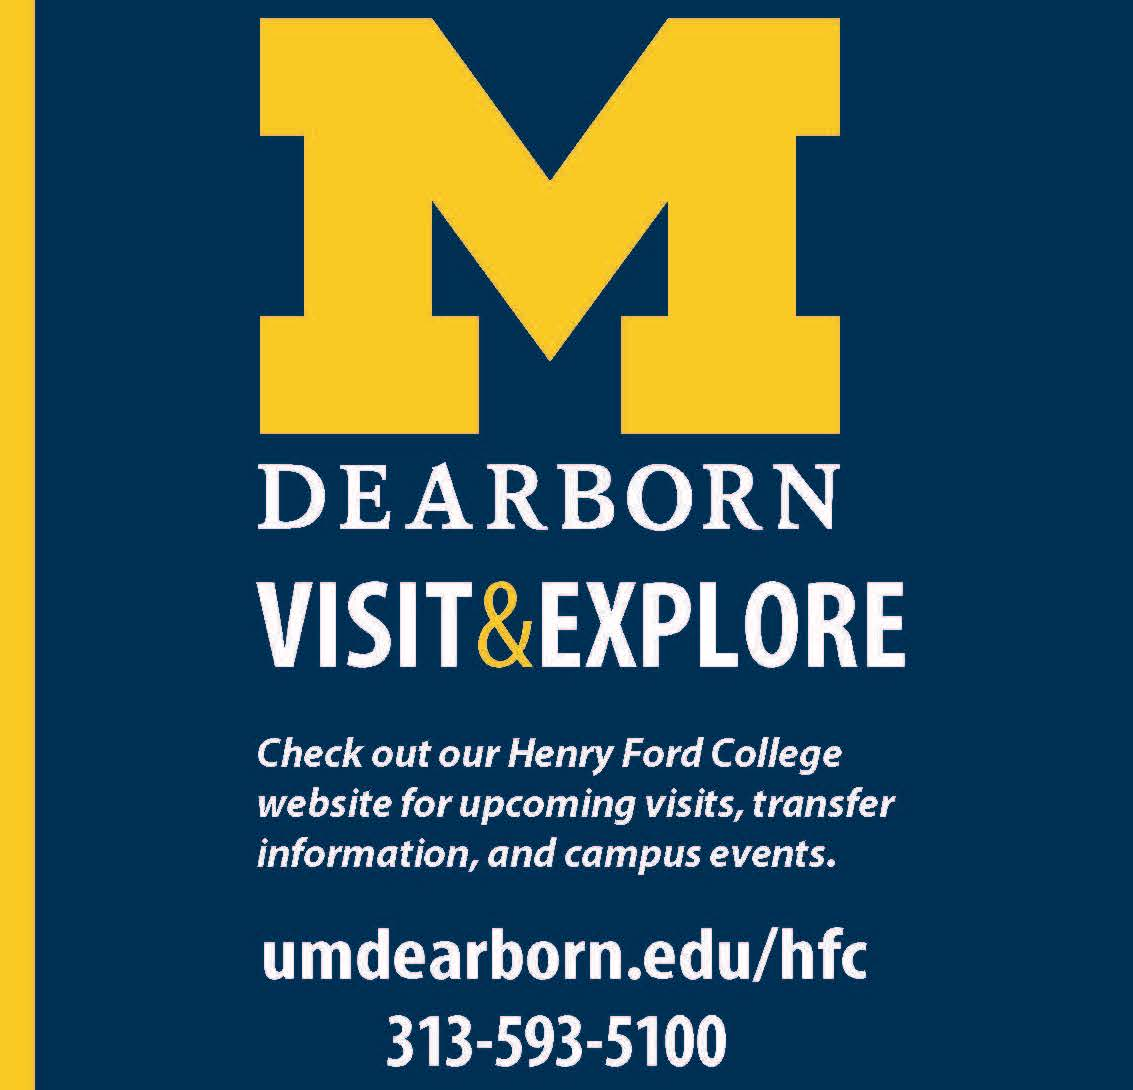 Sidebar advertisement telling students to transfer or enroll in classes at University of Michigan Dearborn